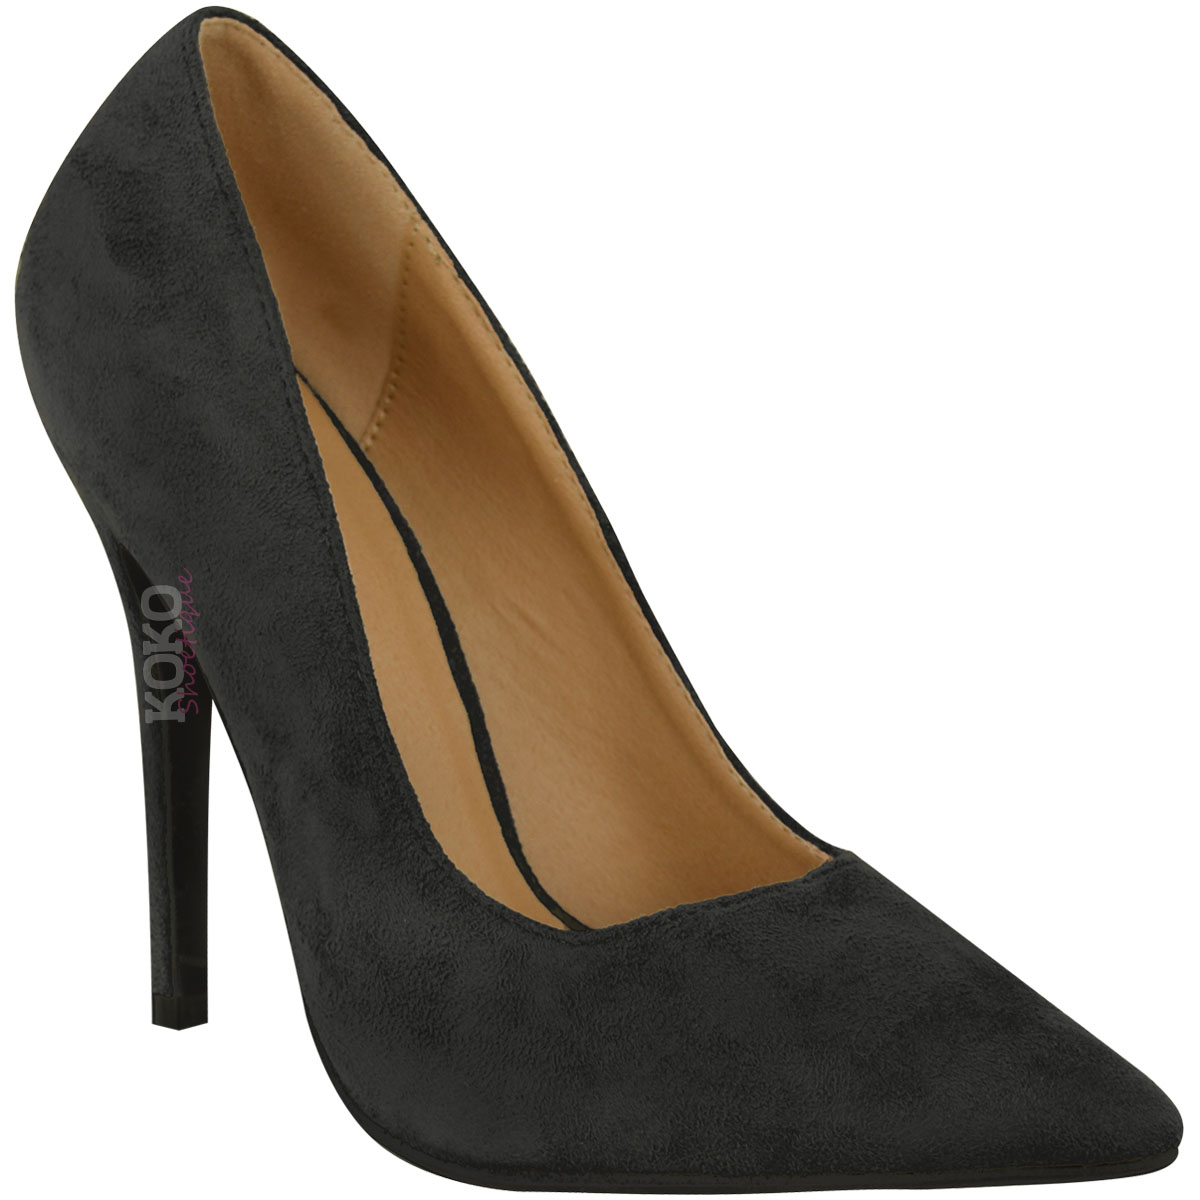 Clothing, Shoes & Accessories Heels Ladies Womens Pointed High Heel Smart Work Party Pumps Court Shoes New Size 3-8